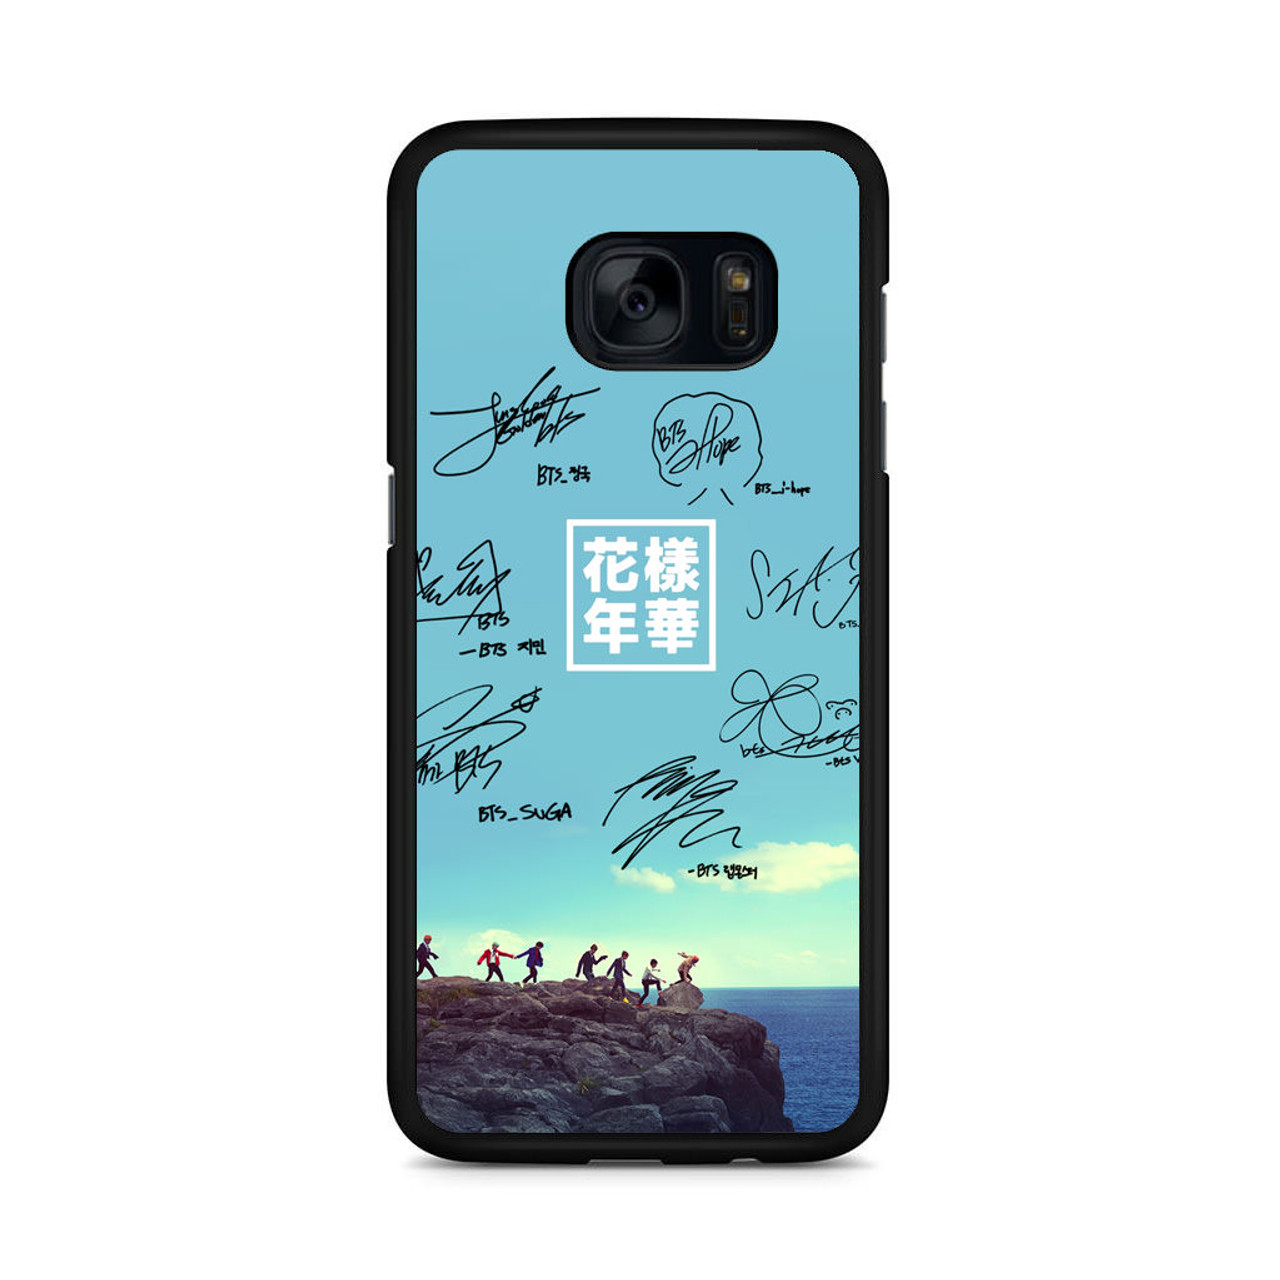 quality design c8ce3 8818e BTS Signature1 Samsung Galaxy S7 Edge Case